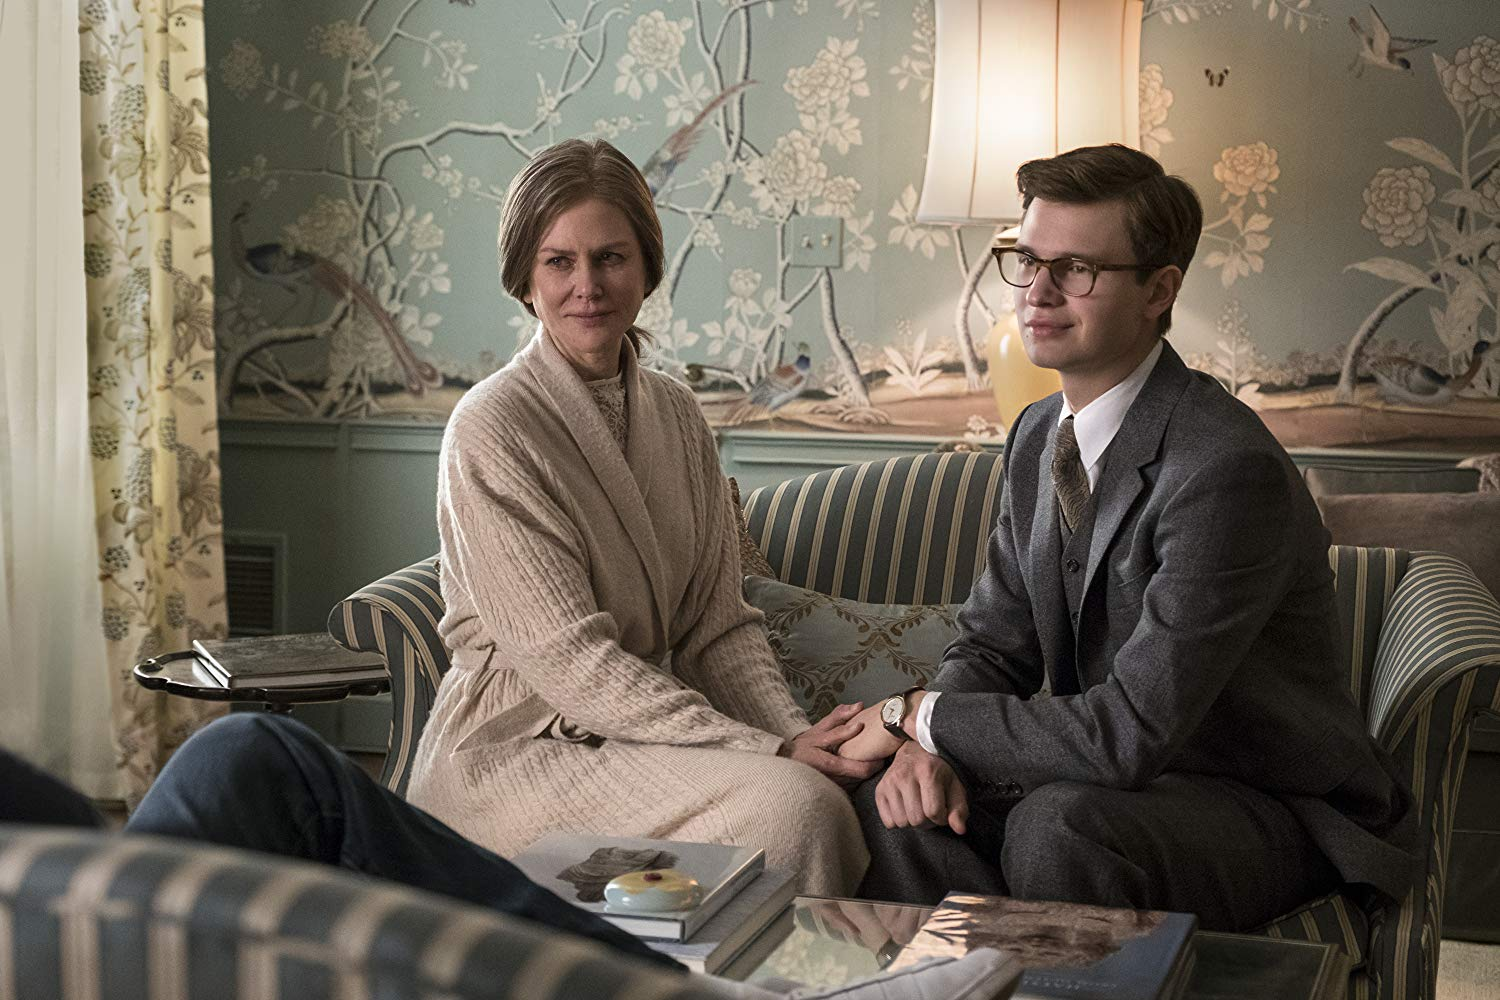 Nicole Kidman and Ansel Egort in The Goldfinch